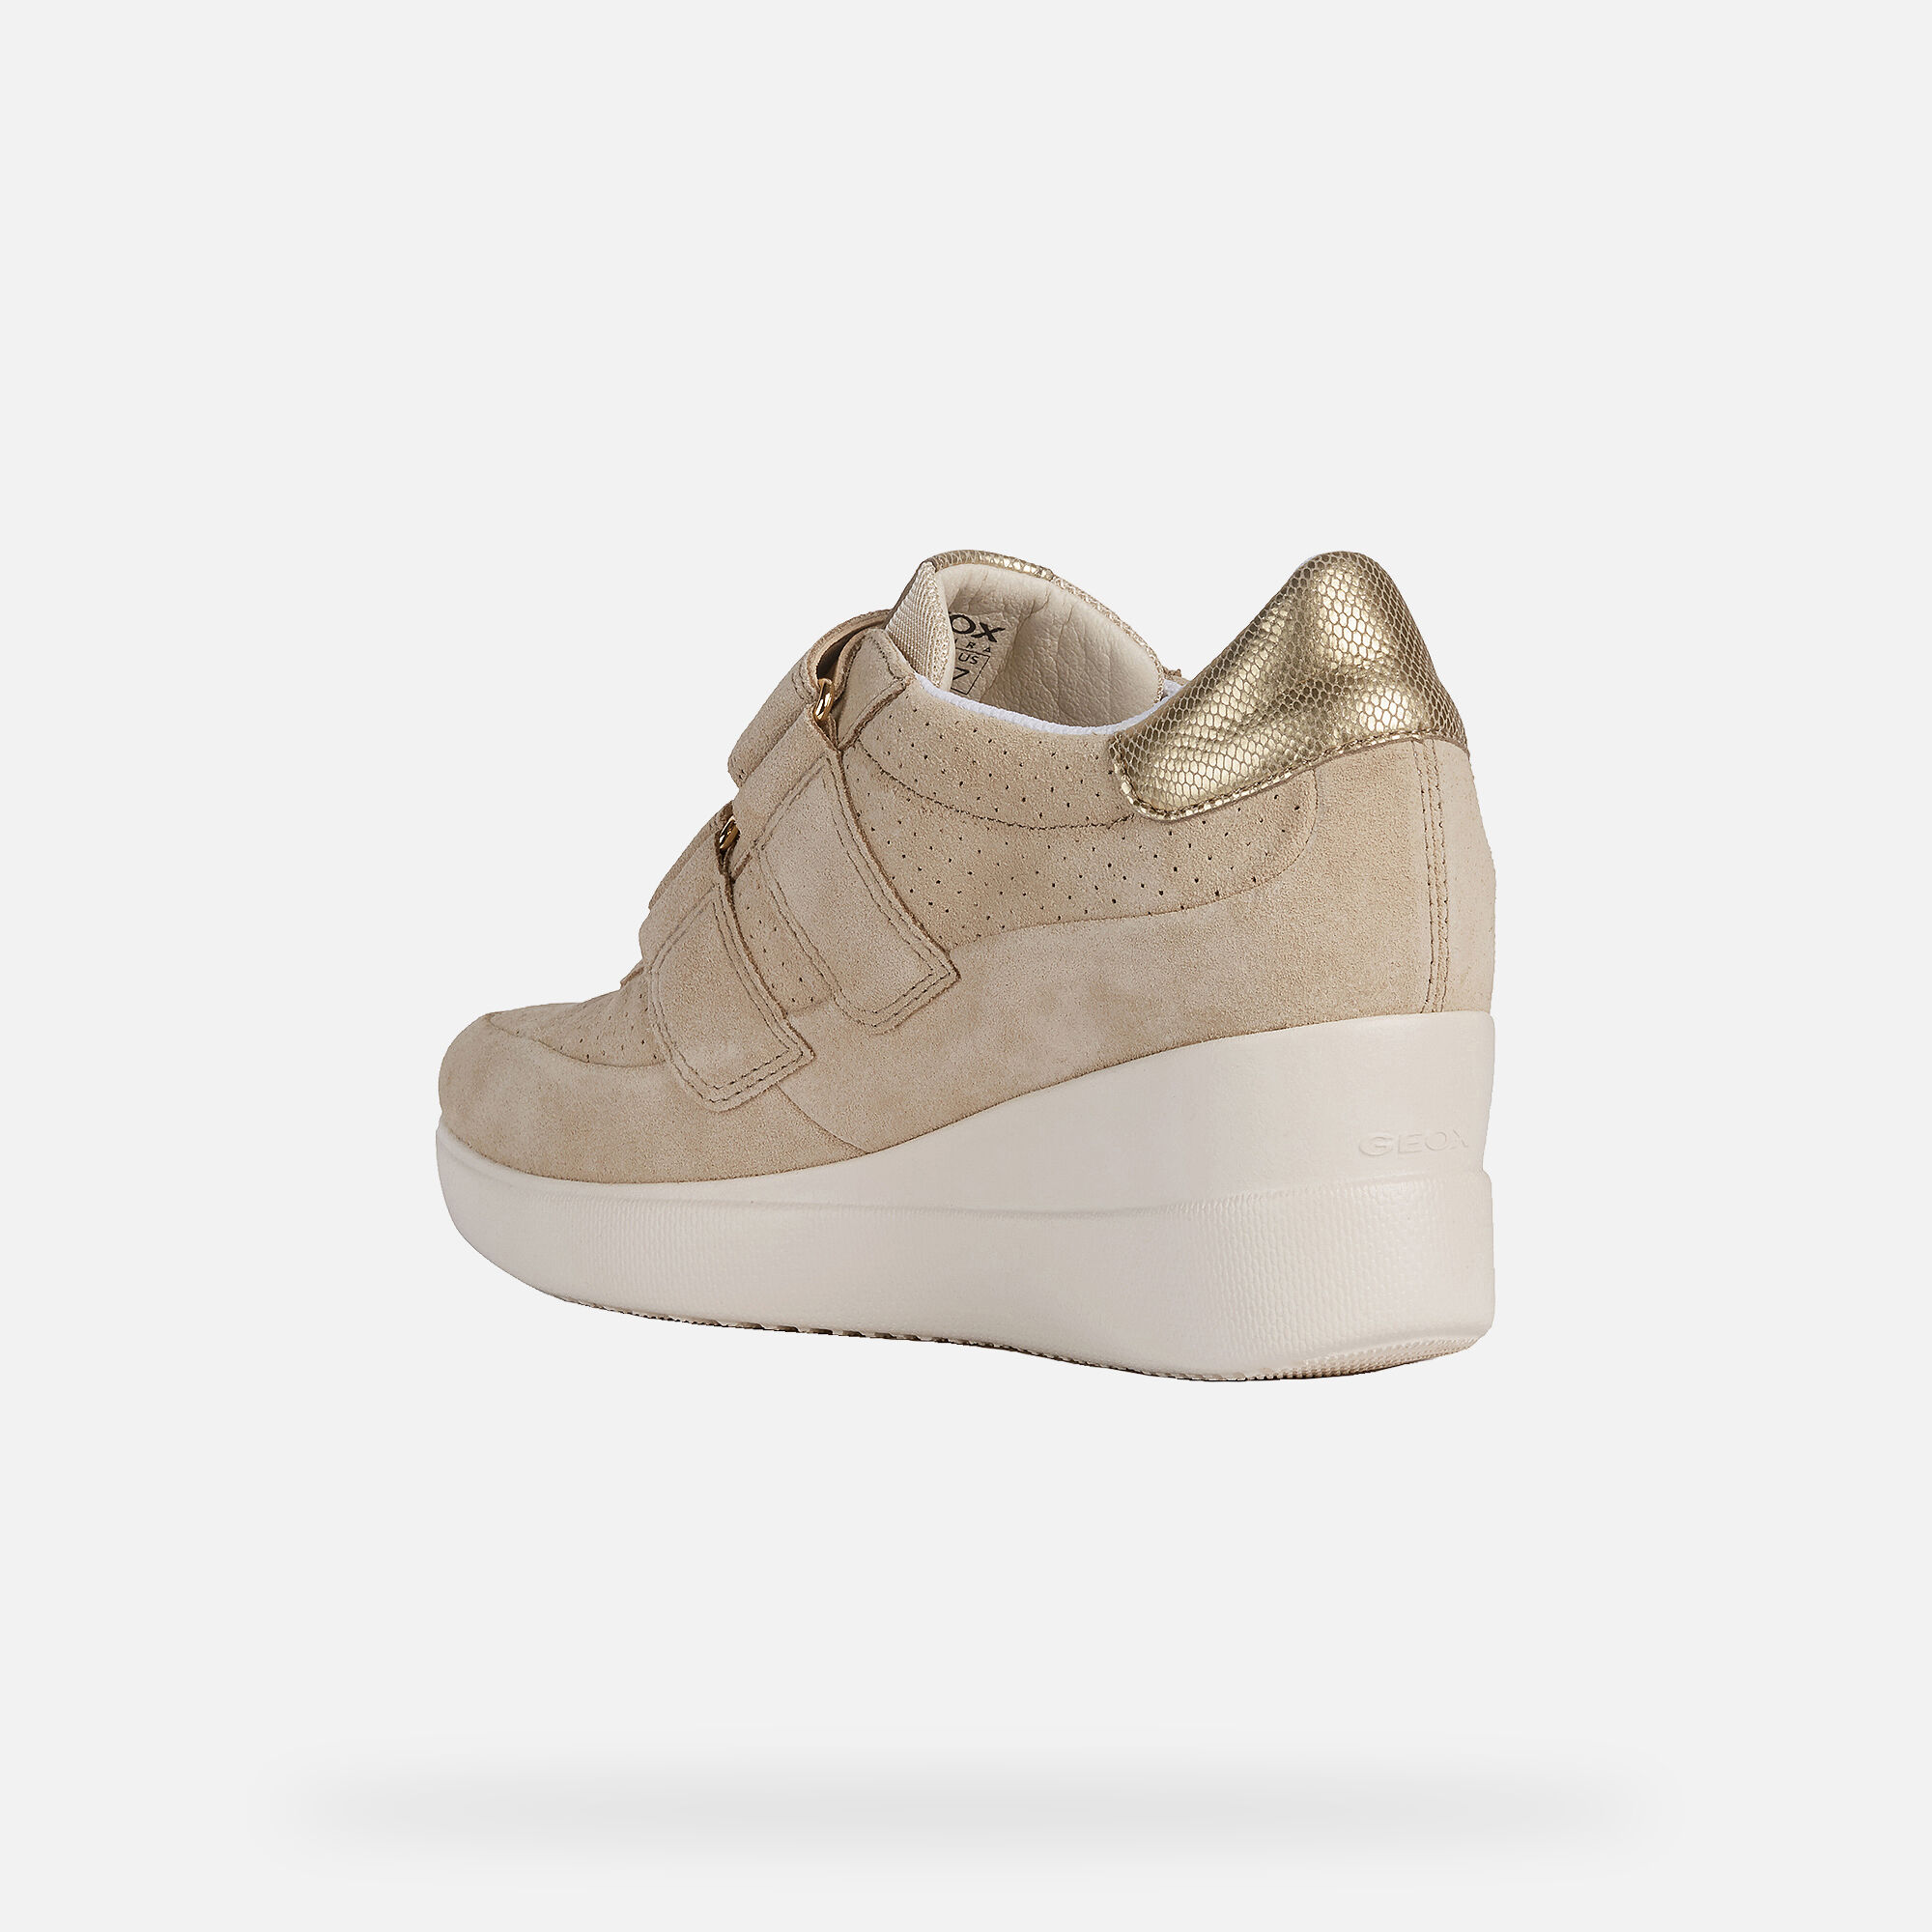 Geox Respira Taupe Wedge Sneakers | Taupe wedges, Wedge